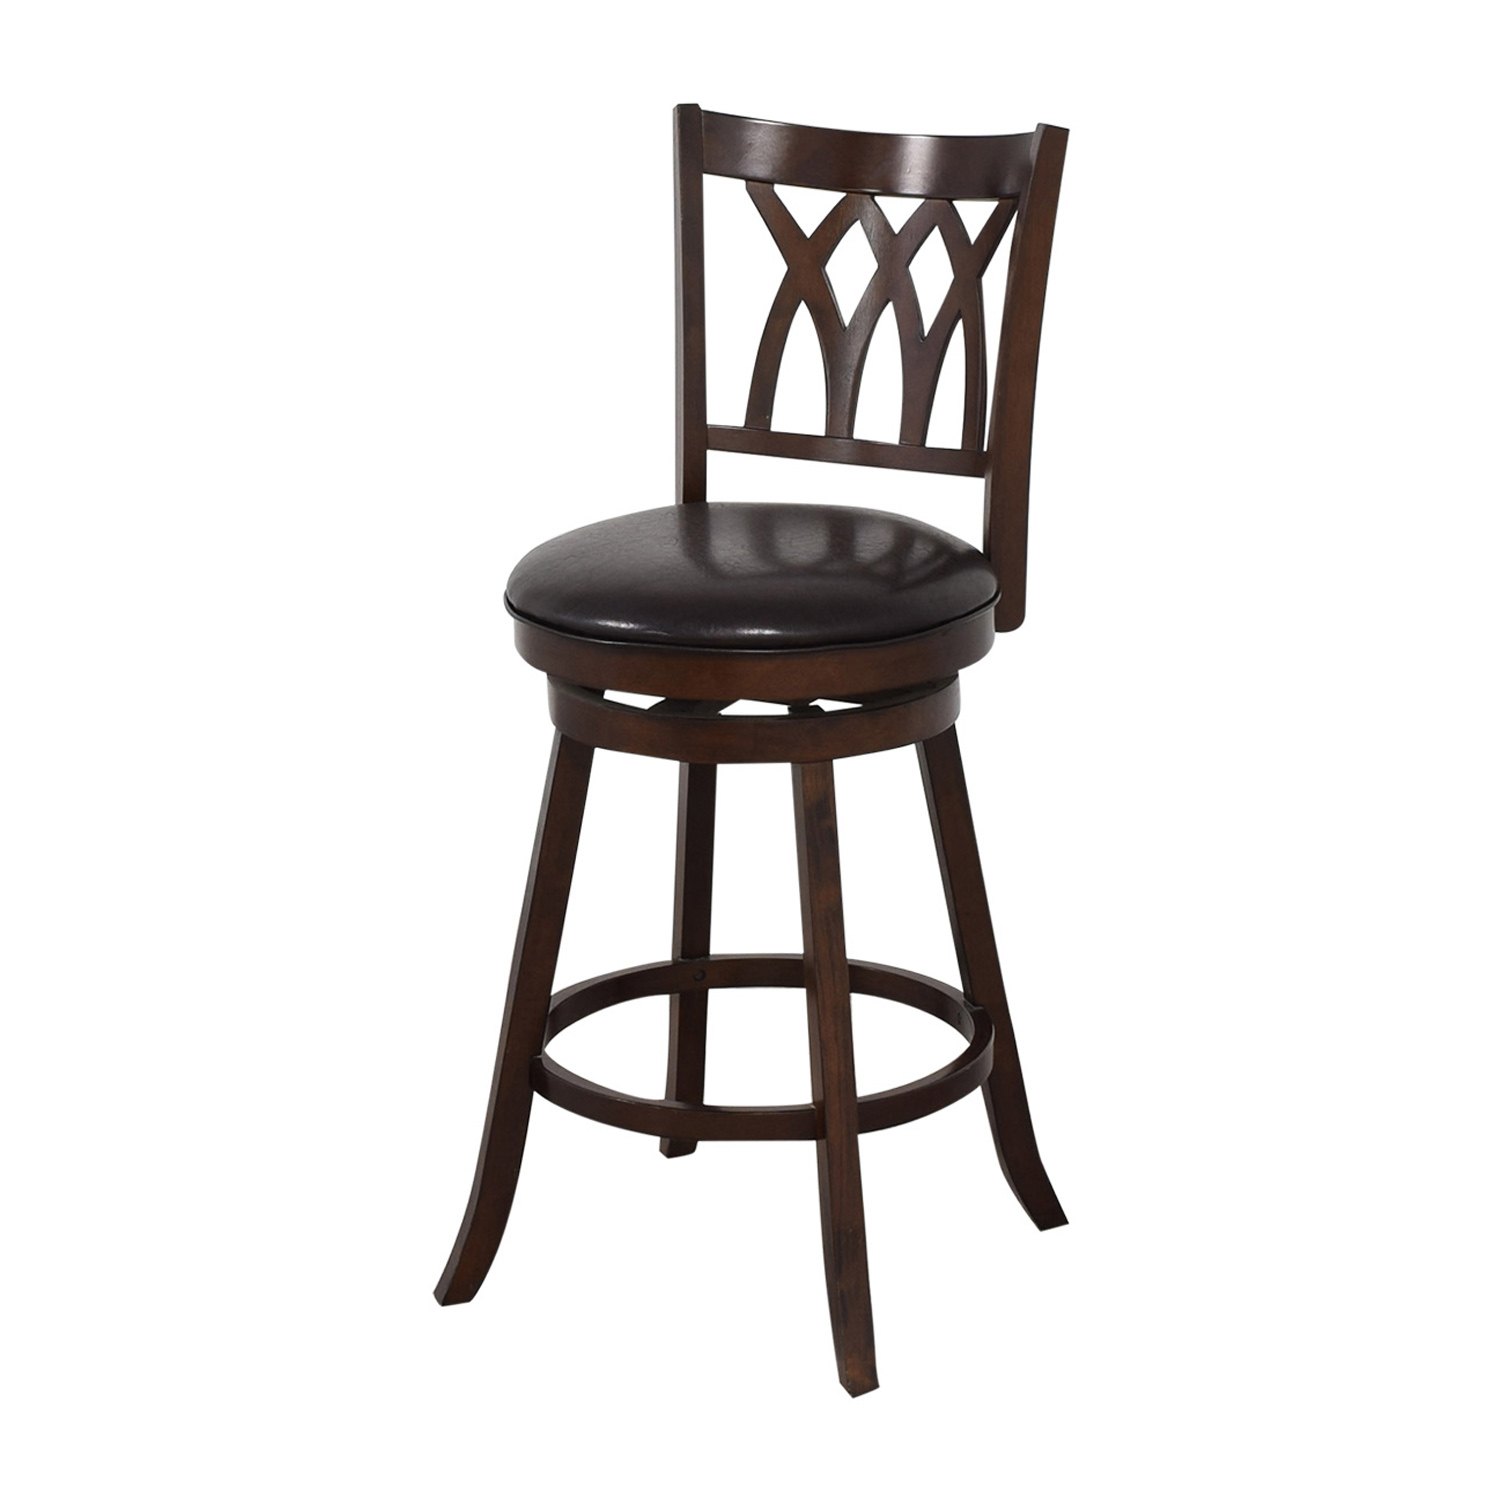 Counter Height Swivel Bar Stools used